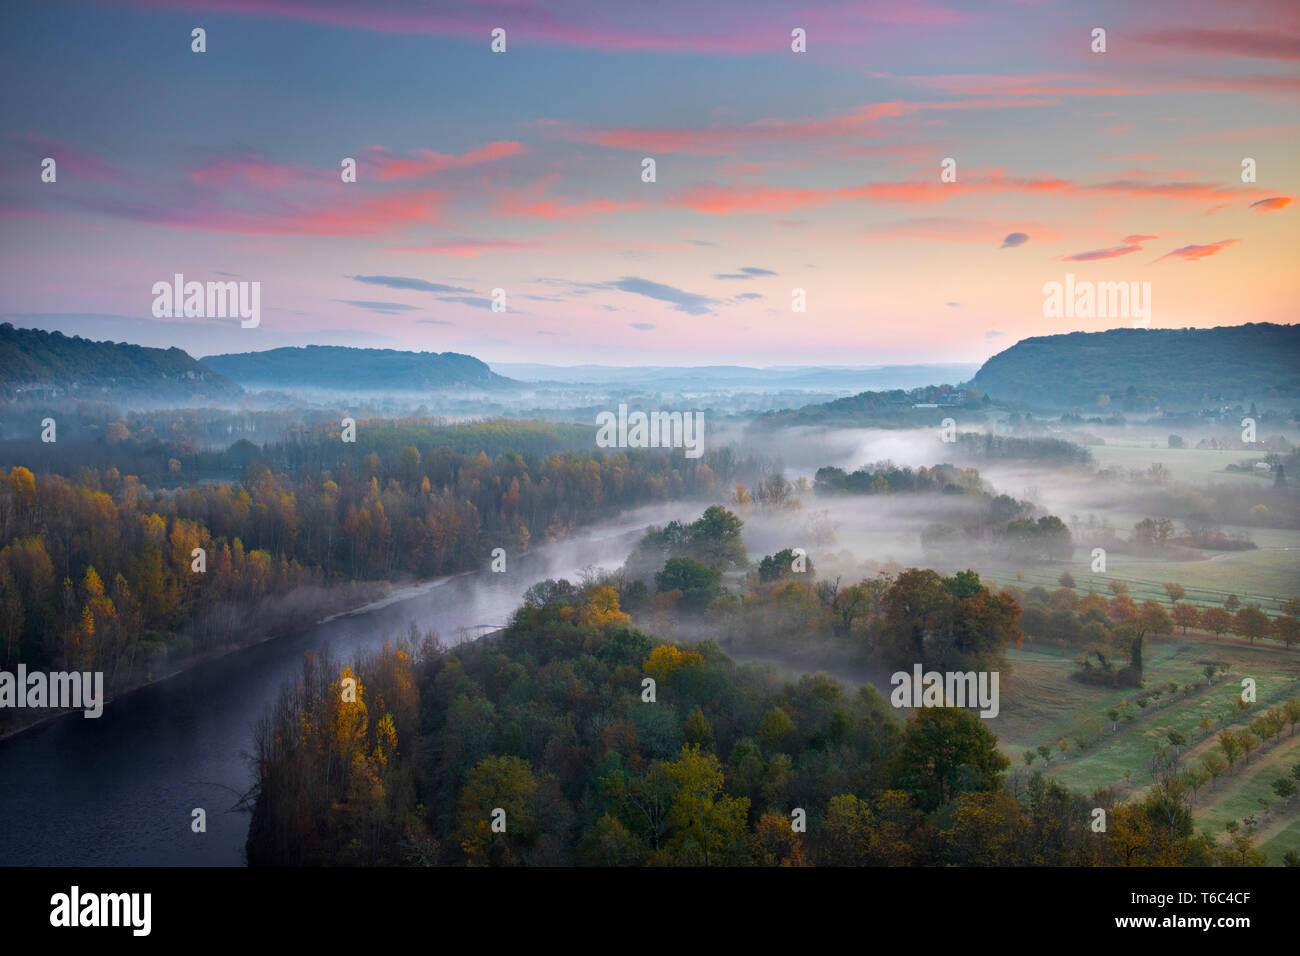 Aerial view of the Dordogne Valley & Dordogne river on a misty morning in autumn, Lot, Midi-Pyrenees, France - Stock Image